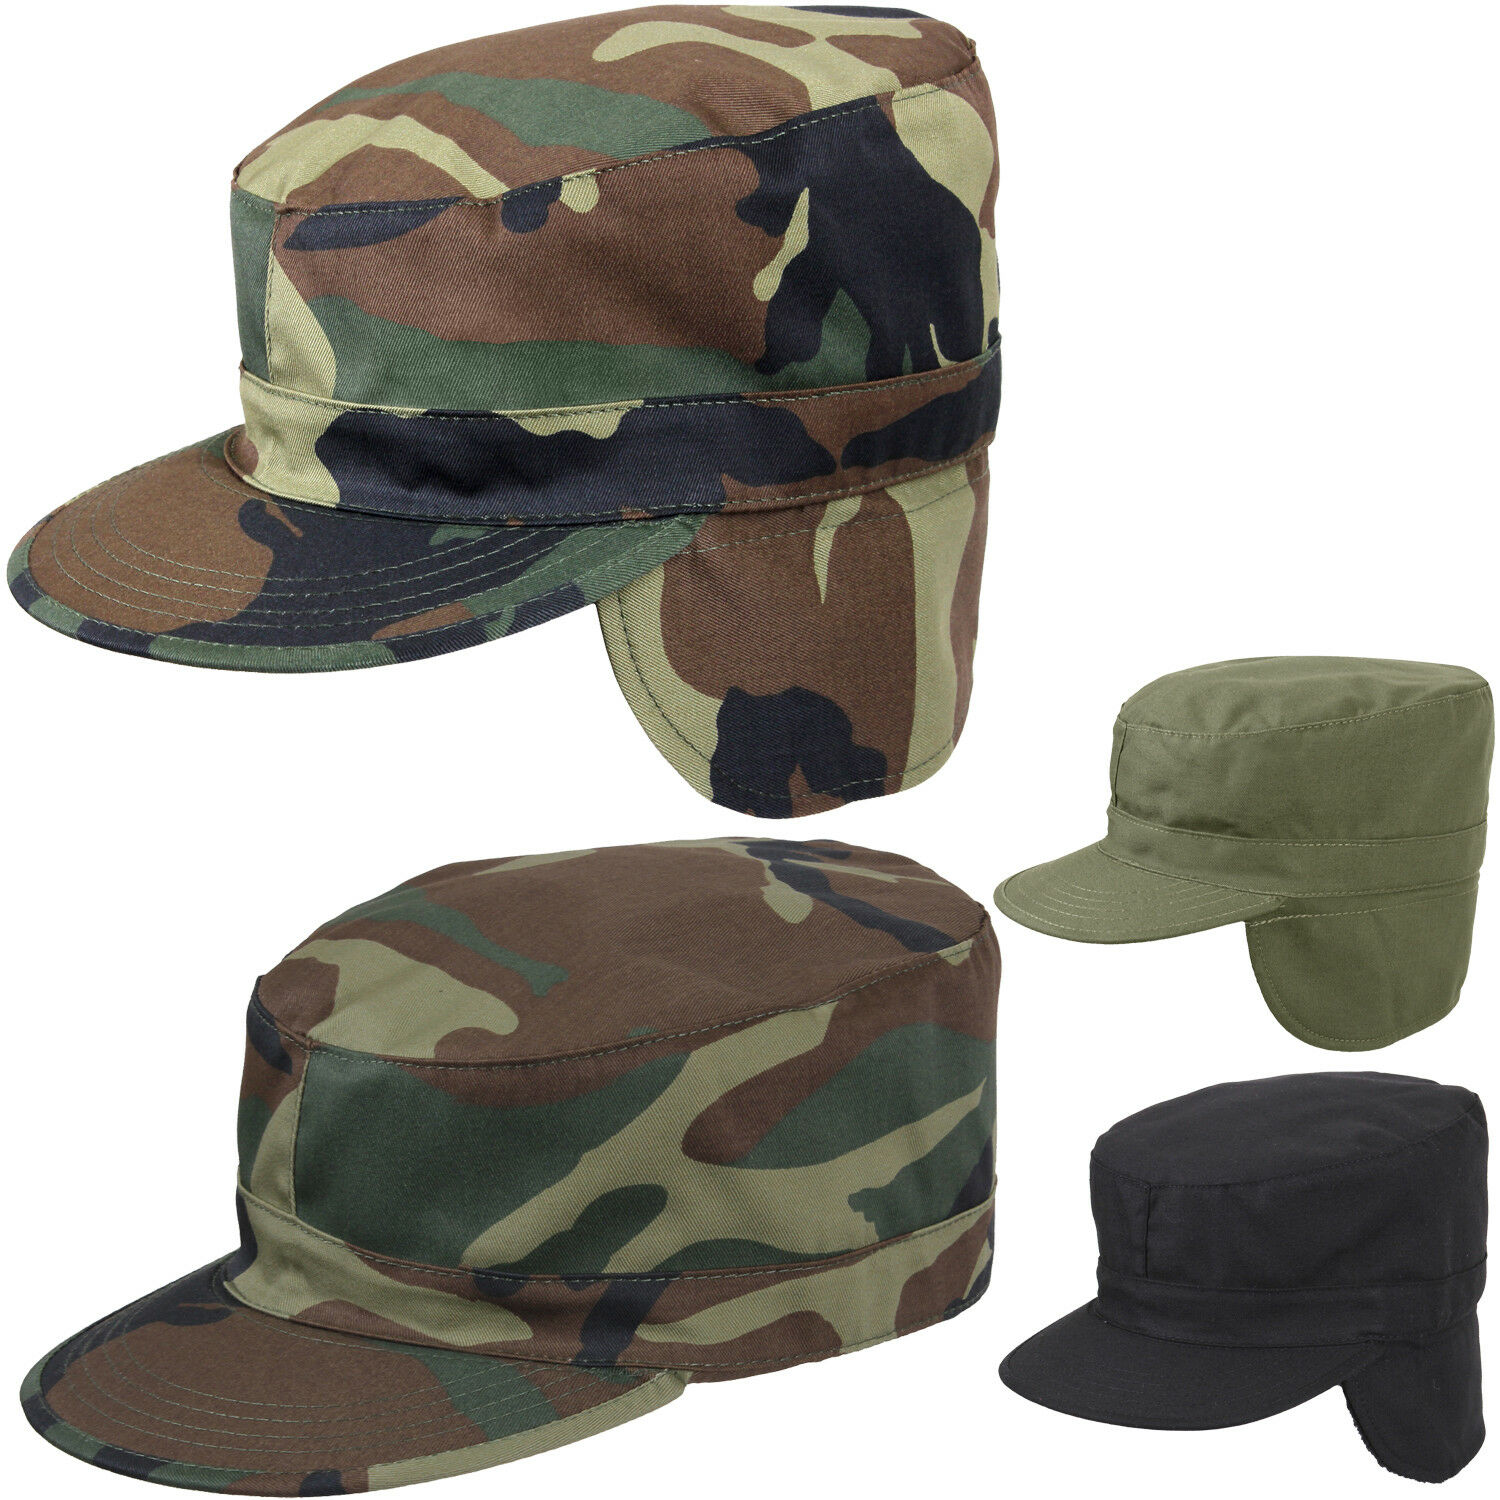 bf67559c9e98b Black - Gi Winter Combat Cap With Earflaps 7 1 4 for sale online